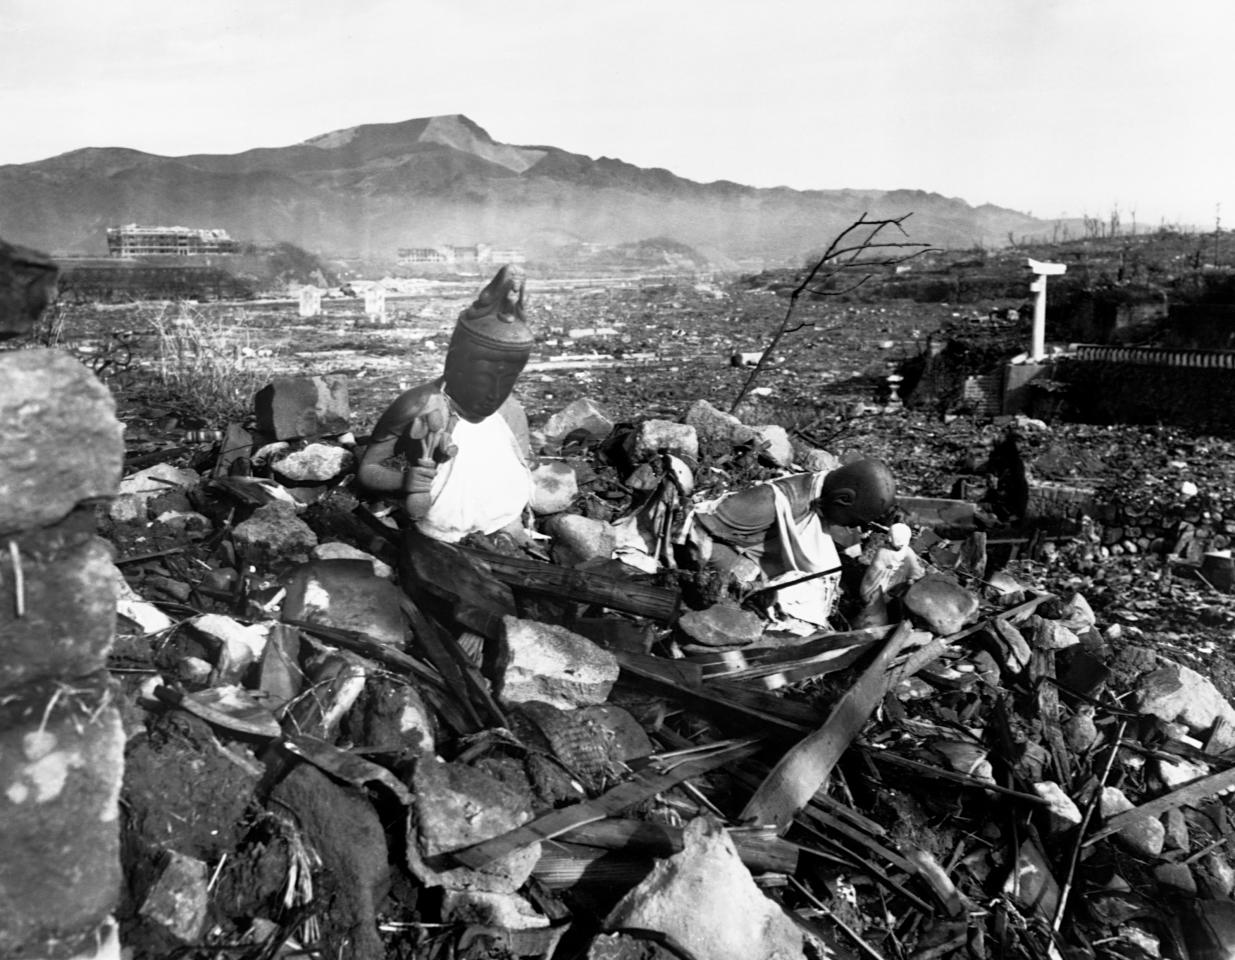 <p>Battered religious figures rest among the rubble of Nagasaki after the atomic bombing of the city by American armed forces on Aug. 9, 1945. (Photo: Corbis via Getty Images) </p>